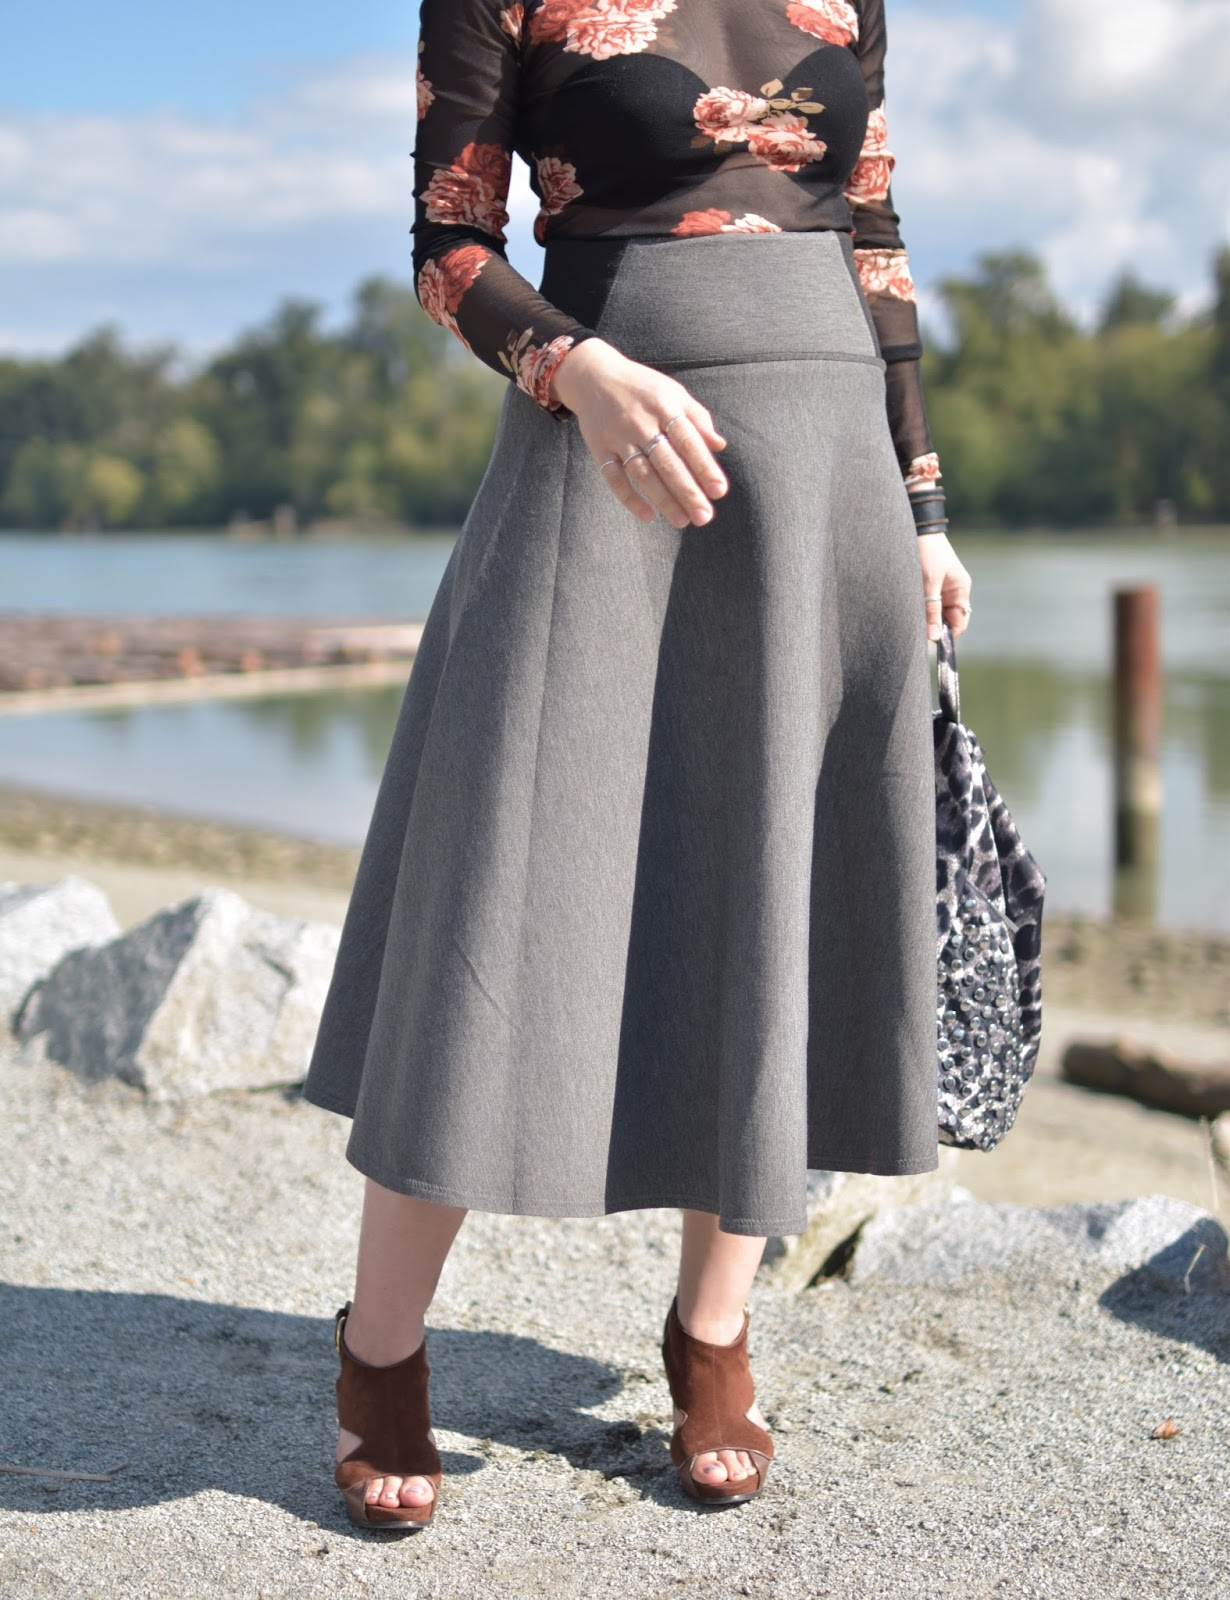 flared midi skirt, sheer floral top, suede platform heels, leopard-print backpack